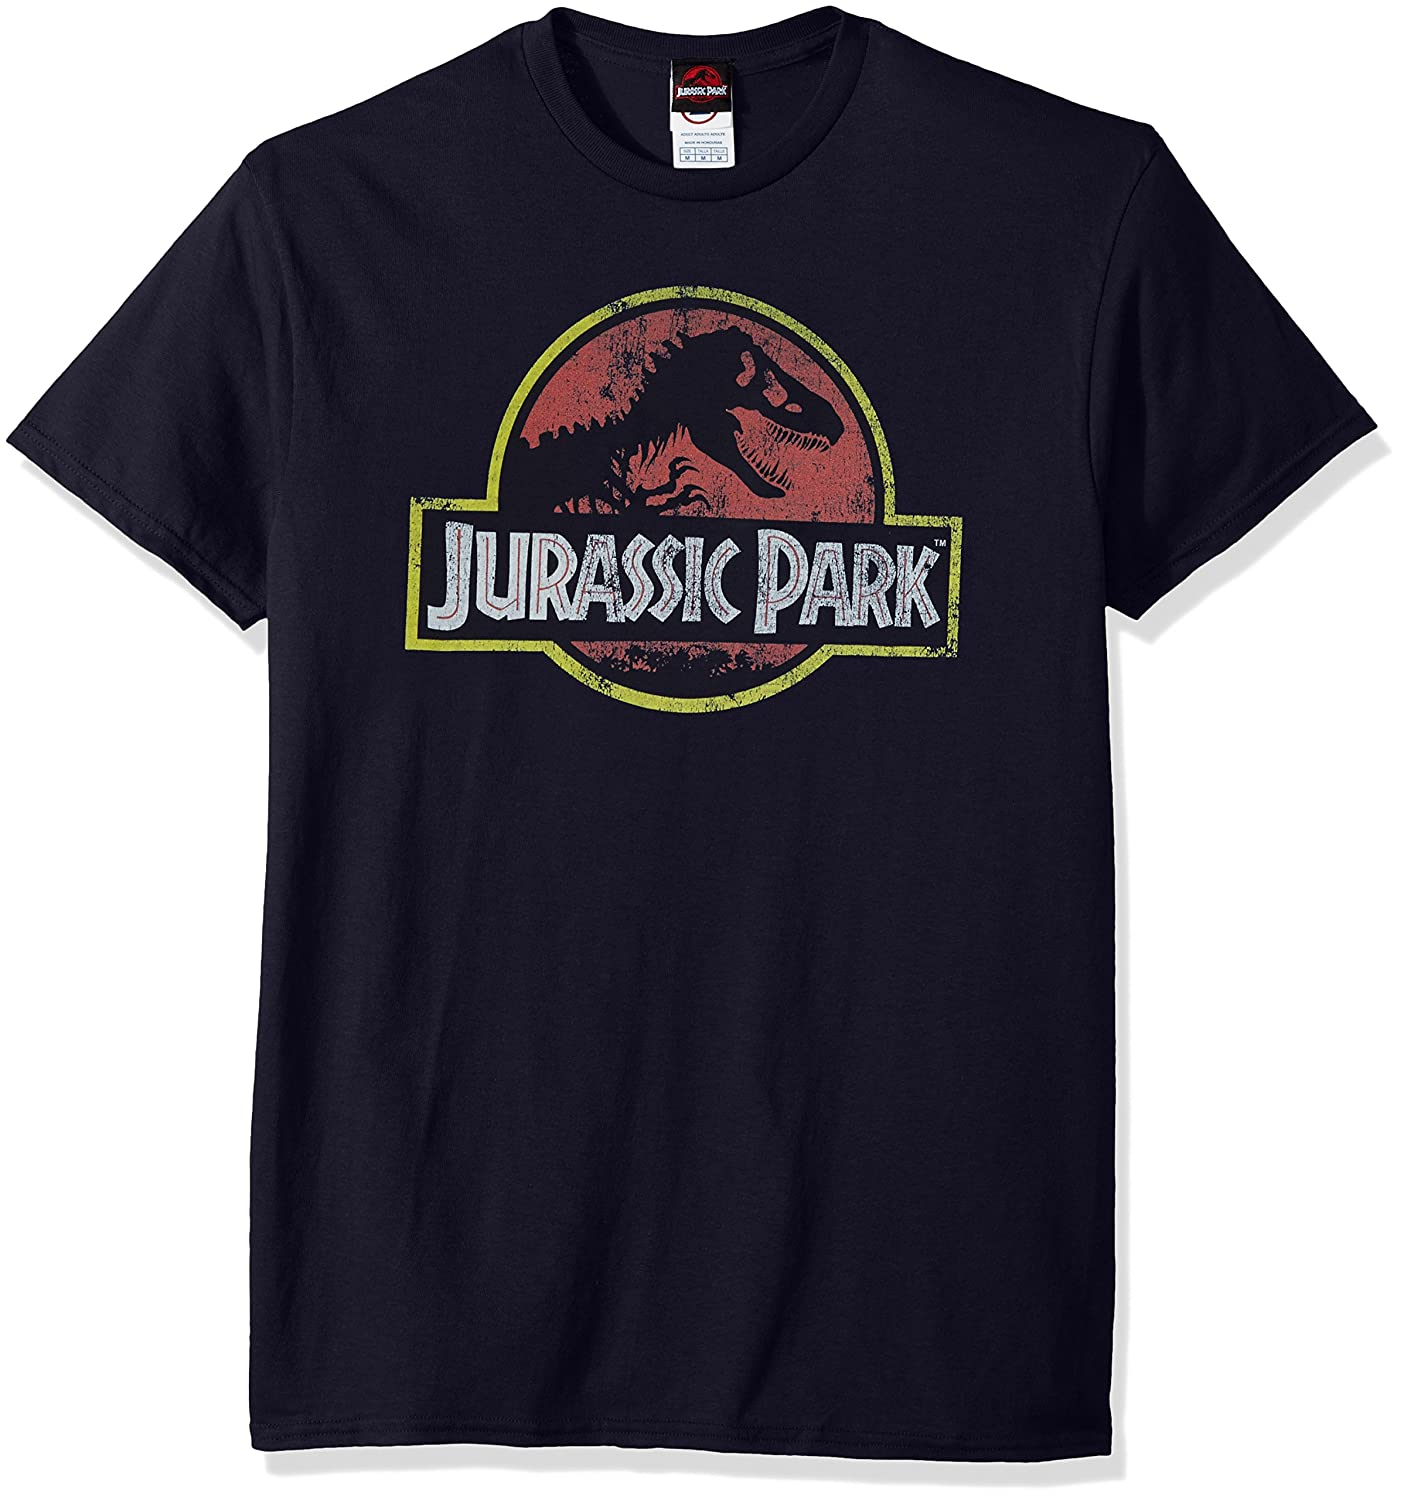 64b43c7c Jurassic Park Men's T-Shirt: Amazon.ca: Clothing & Accessories